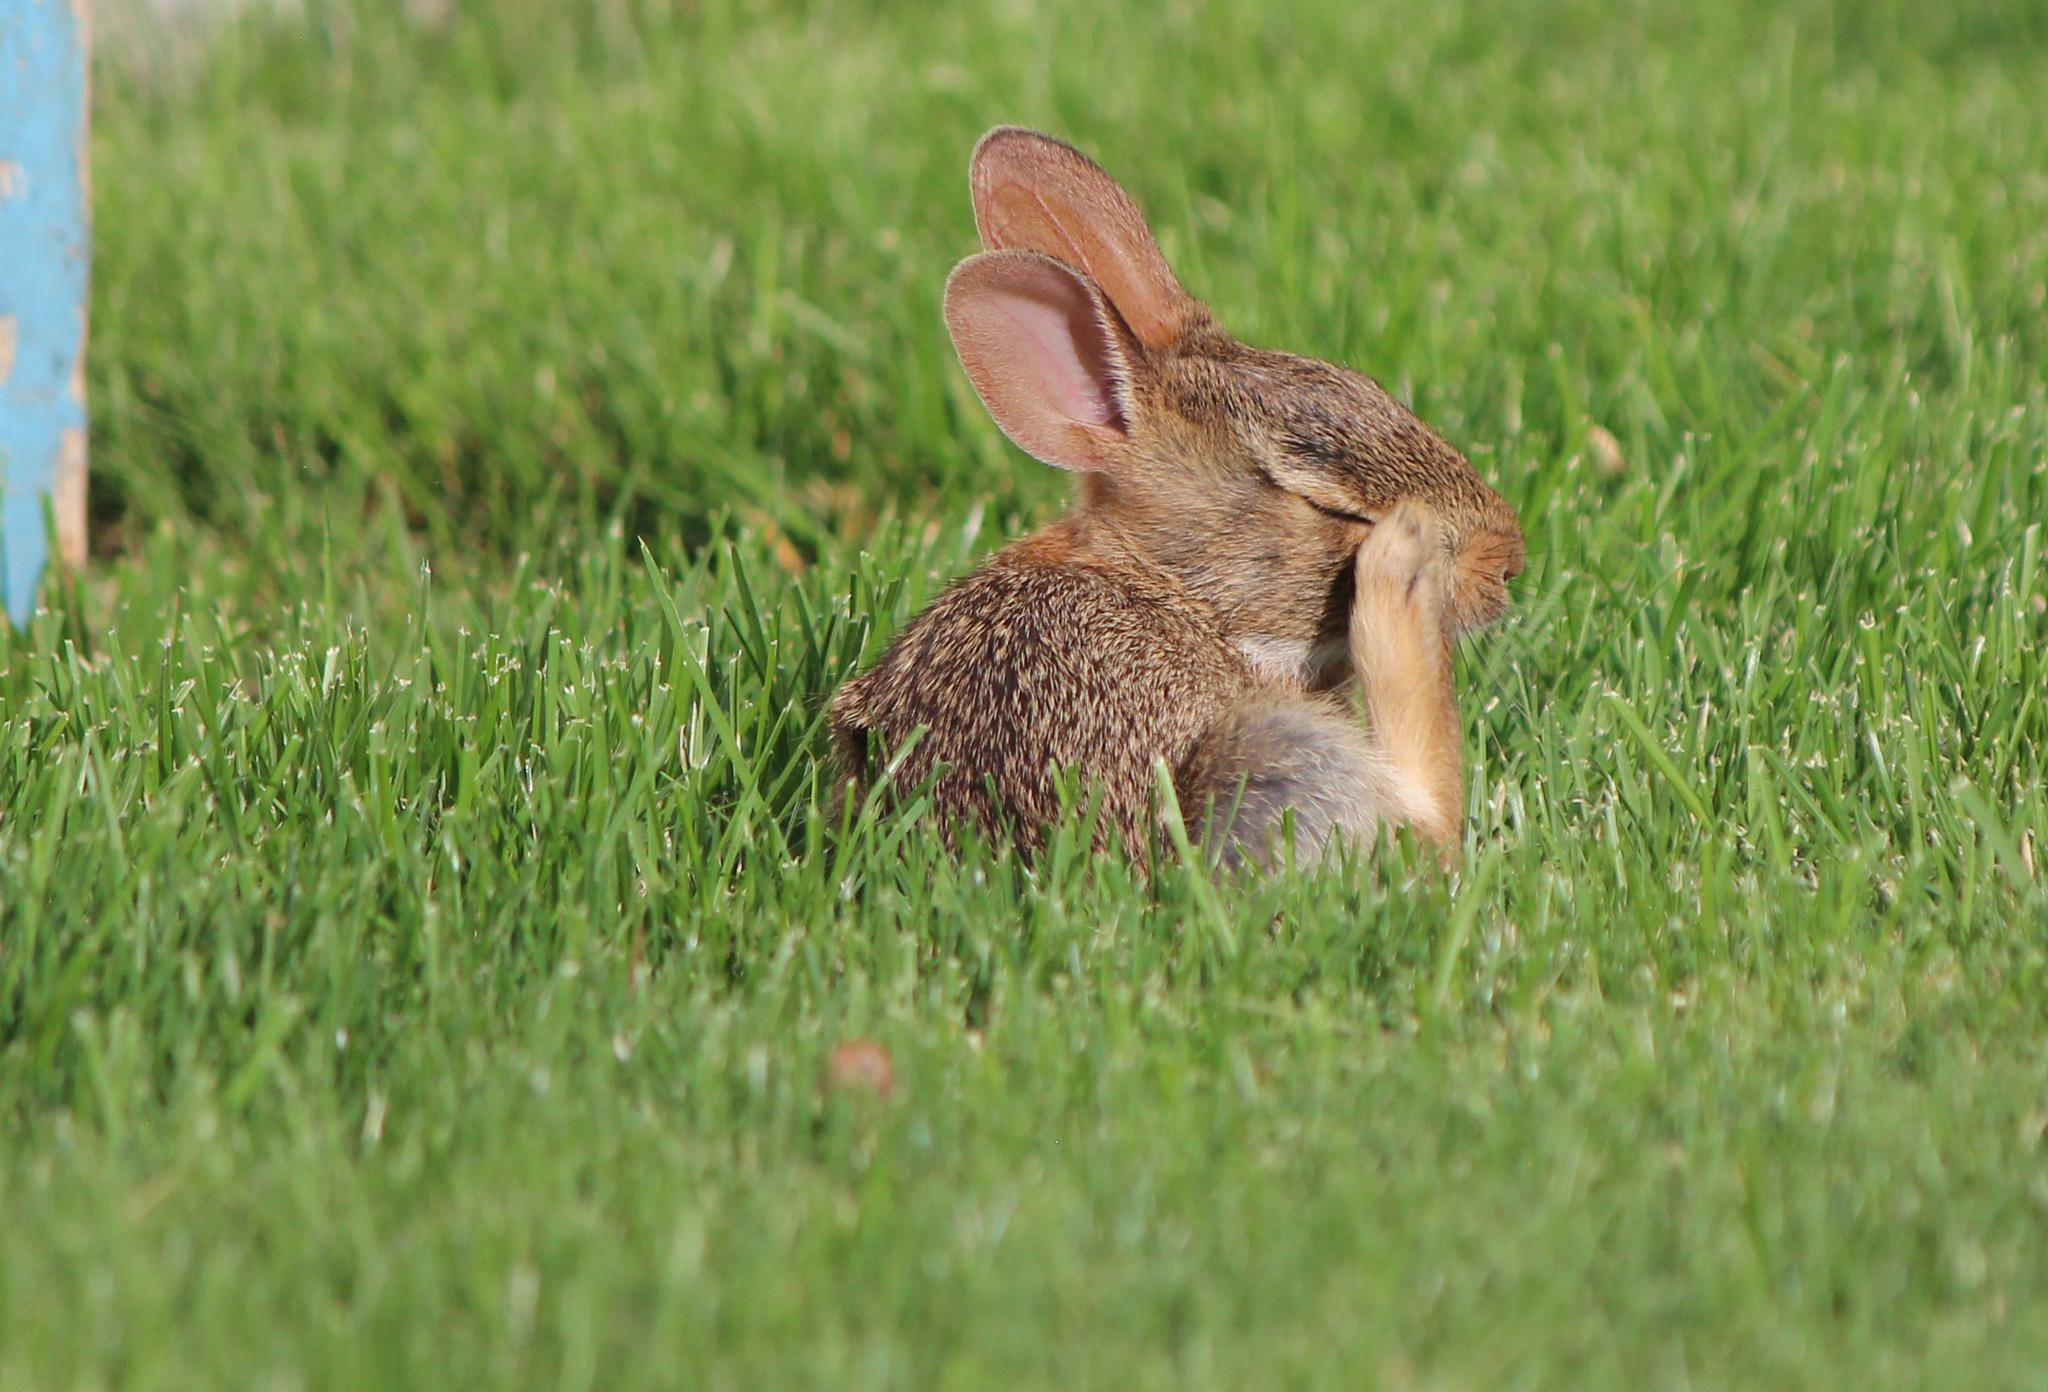 Baby Bunny by tonia.turner.31